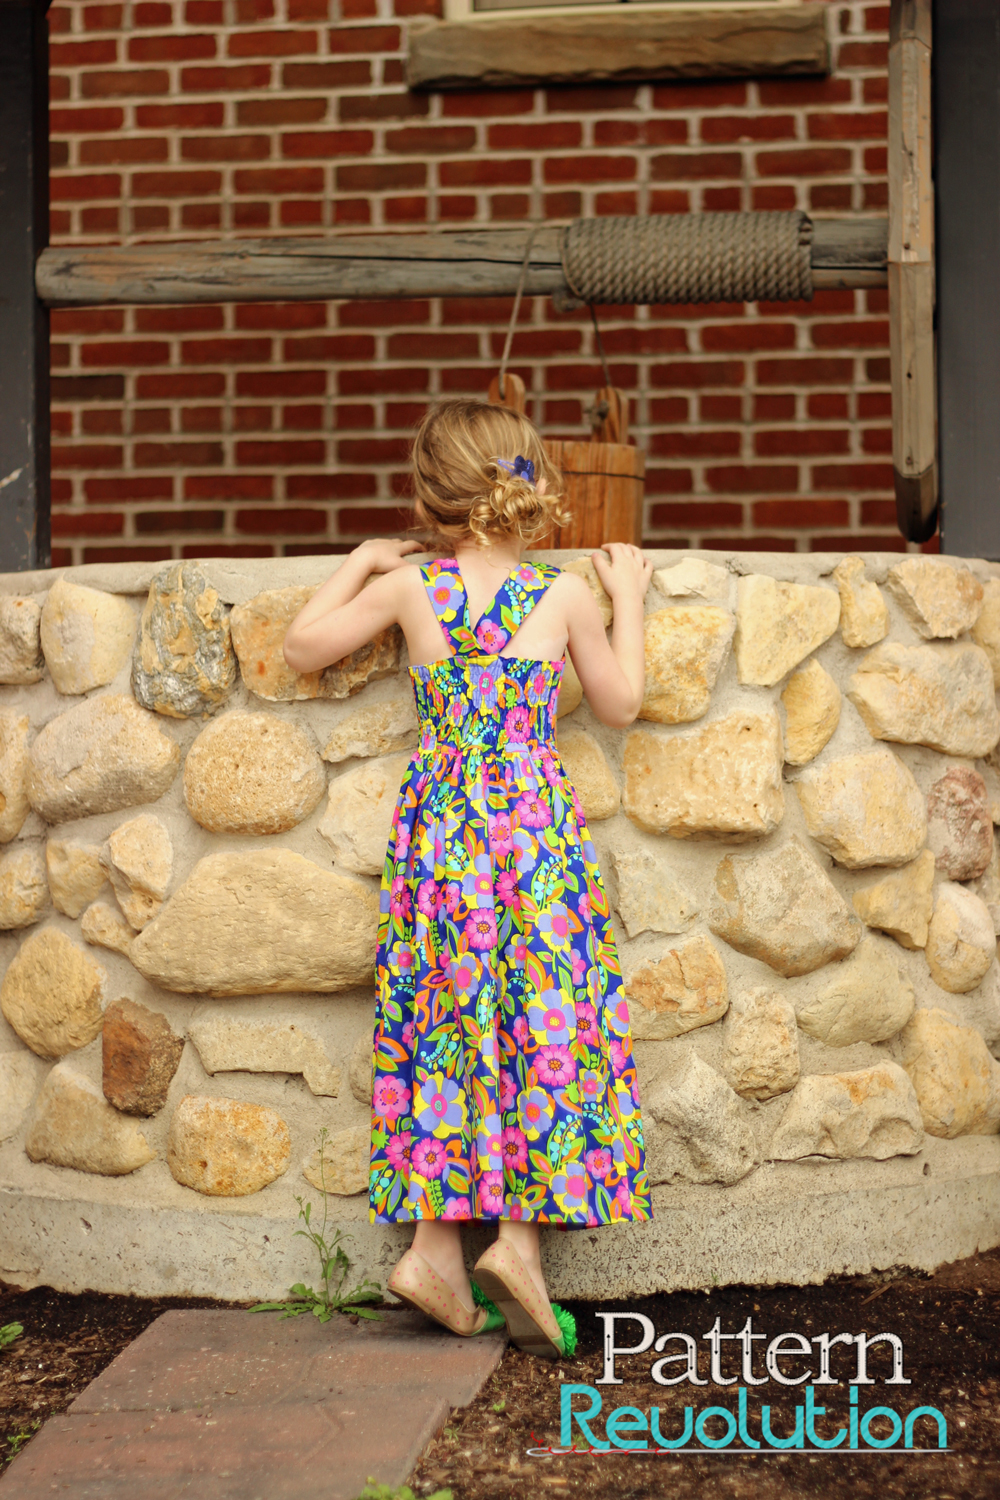 Brueram Dress by Sofilantjes- Pattern Revolution